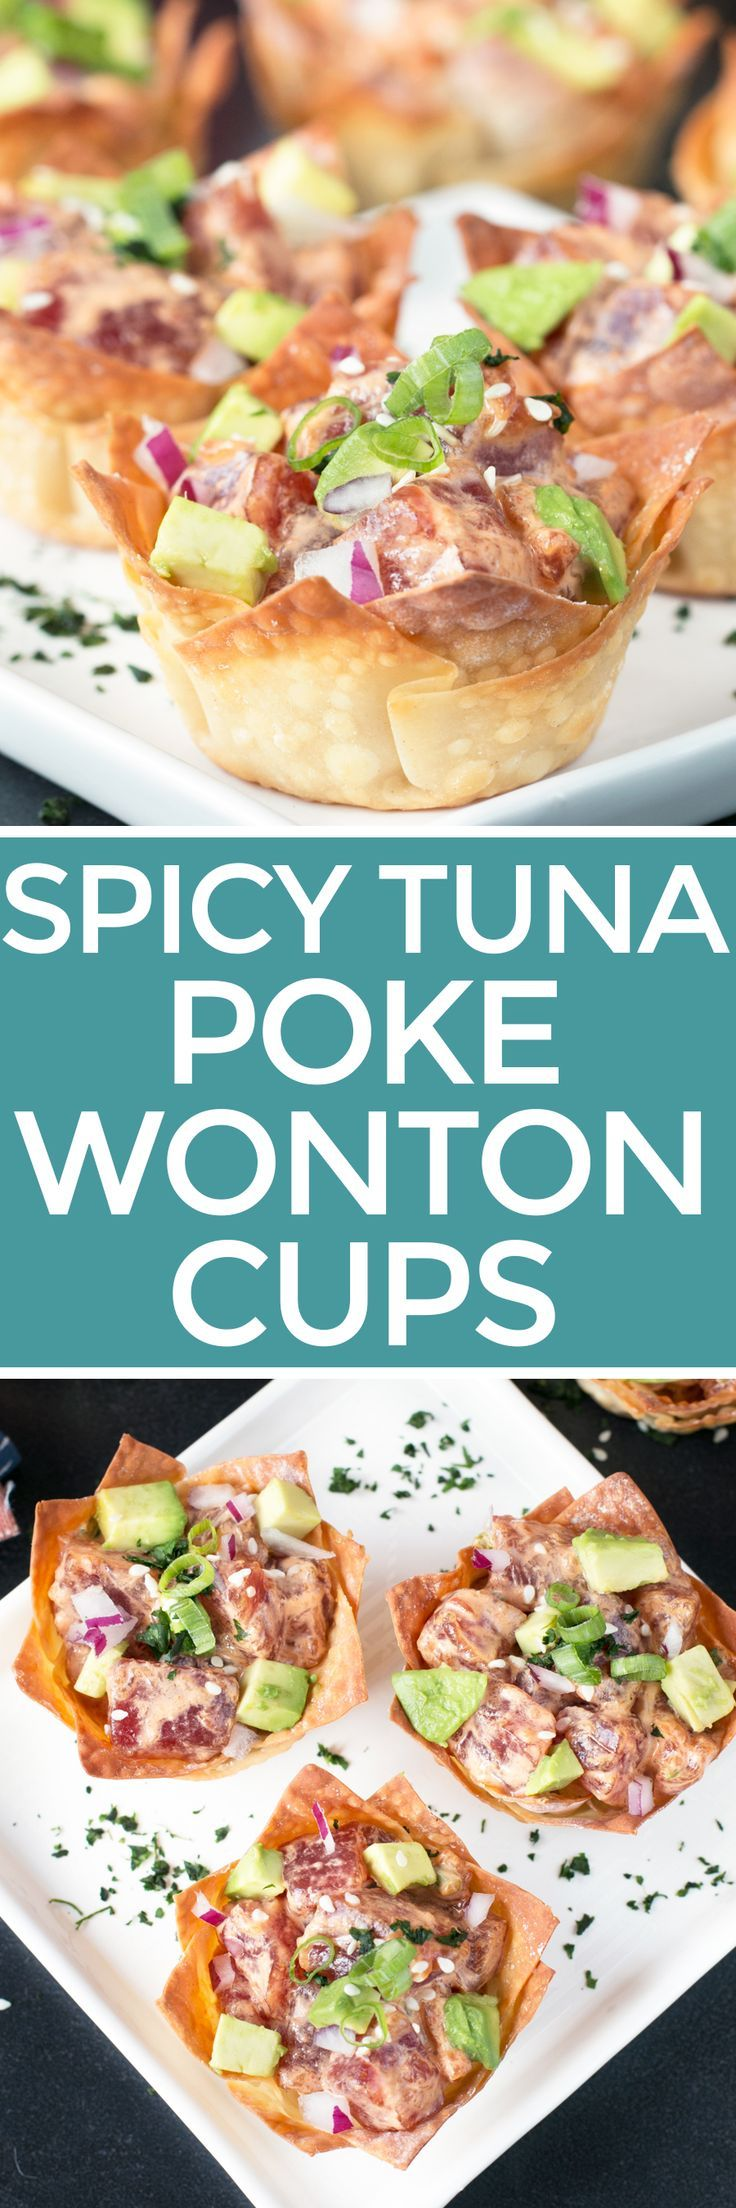 Spicy Tuna Poke Wonton Cups are how I take myself back to Hawaii through food. Each bite of the spicy, fresh, delicious fish in crispy golden wonton cups is an explosion of complex flavors that only take a few minutes to pull together. If you can't fly to Hawaii, then take yourself there on a wave of these island flavors! Spicy Tuna Poke and Avocado Wonton Cups | cakenknife.com #party #entertaining #recipe